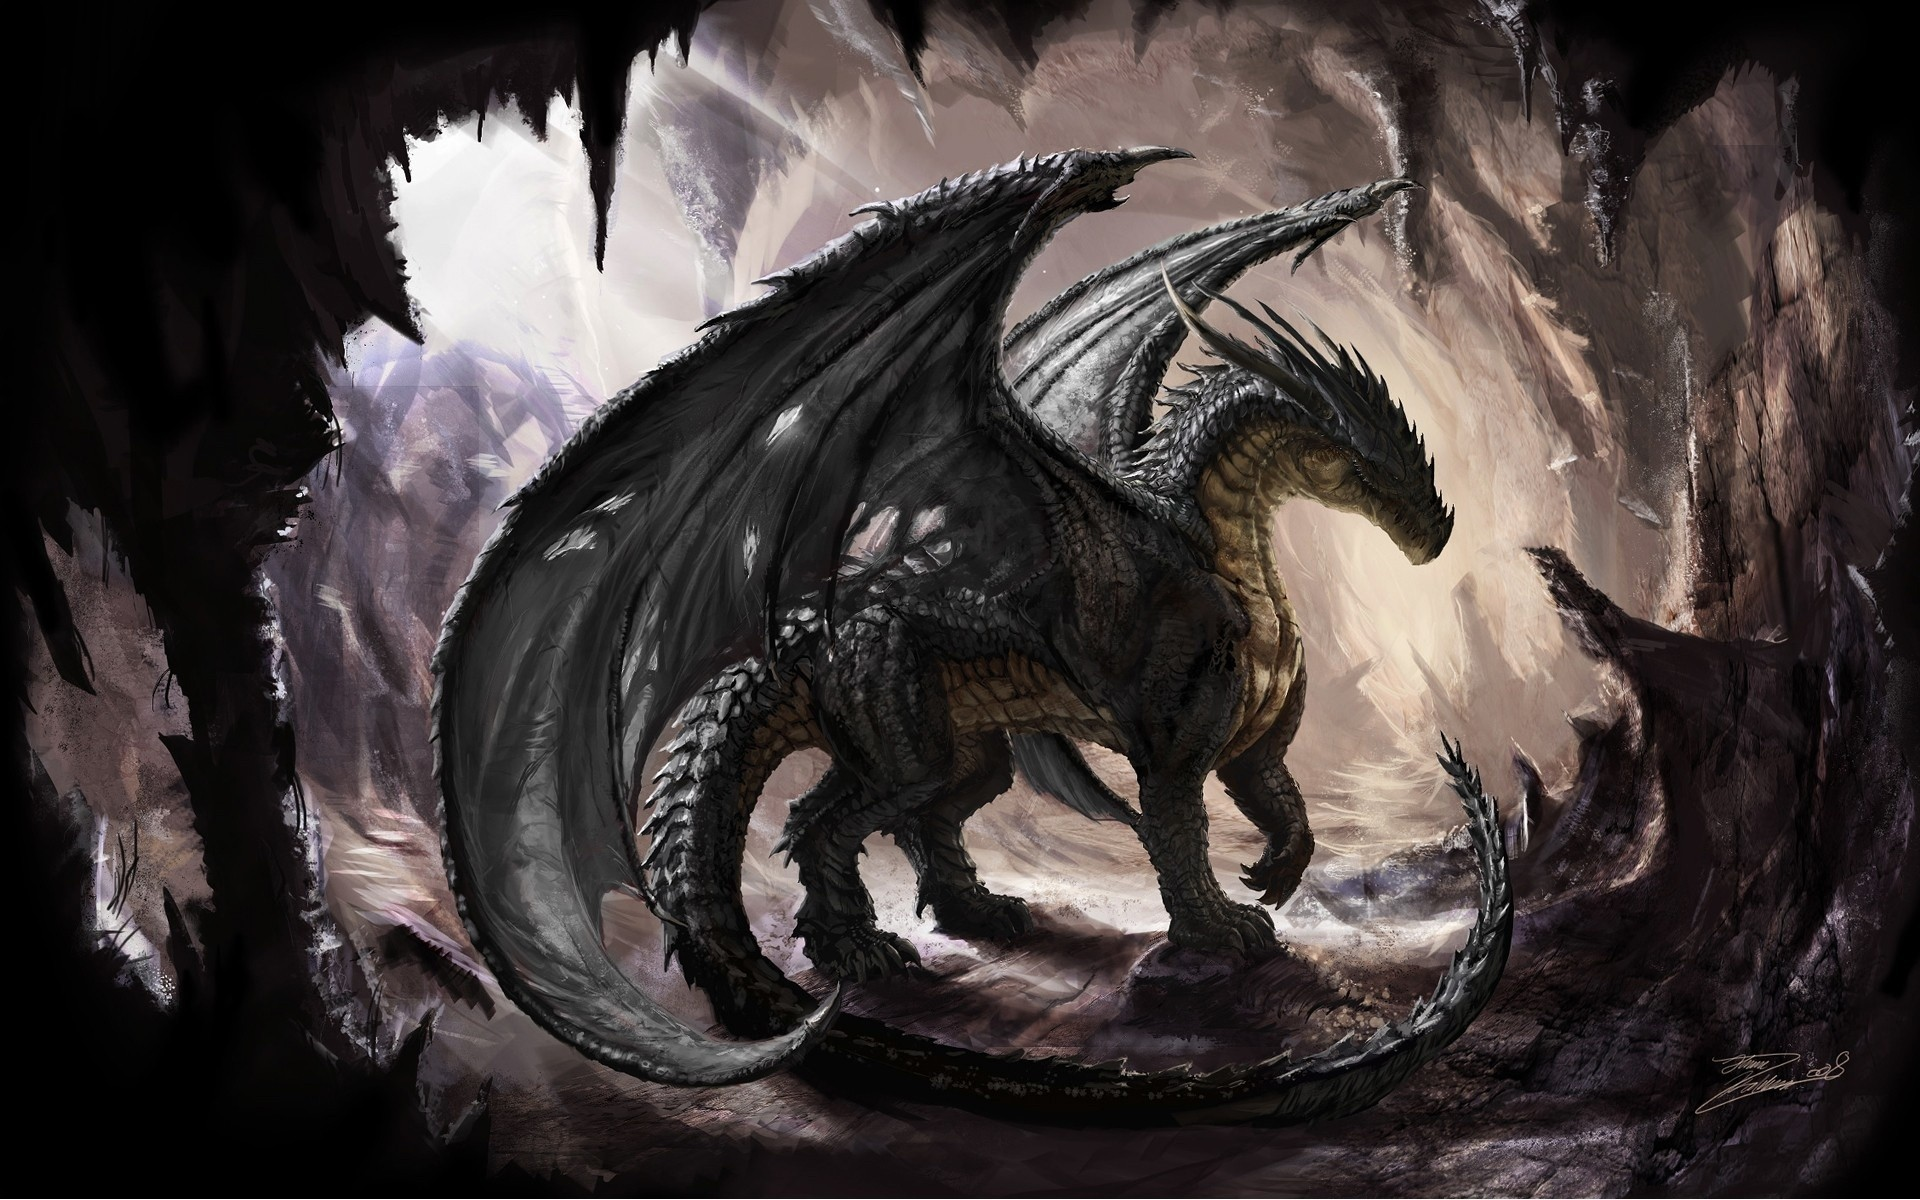 Black Dragon 3d art black dragon fantasy 1920x1200